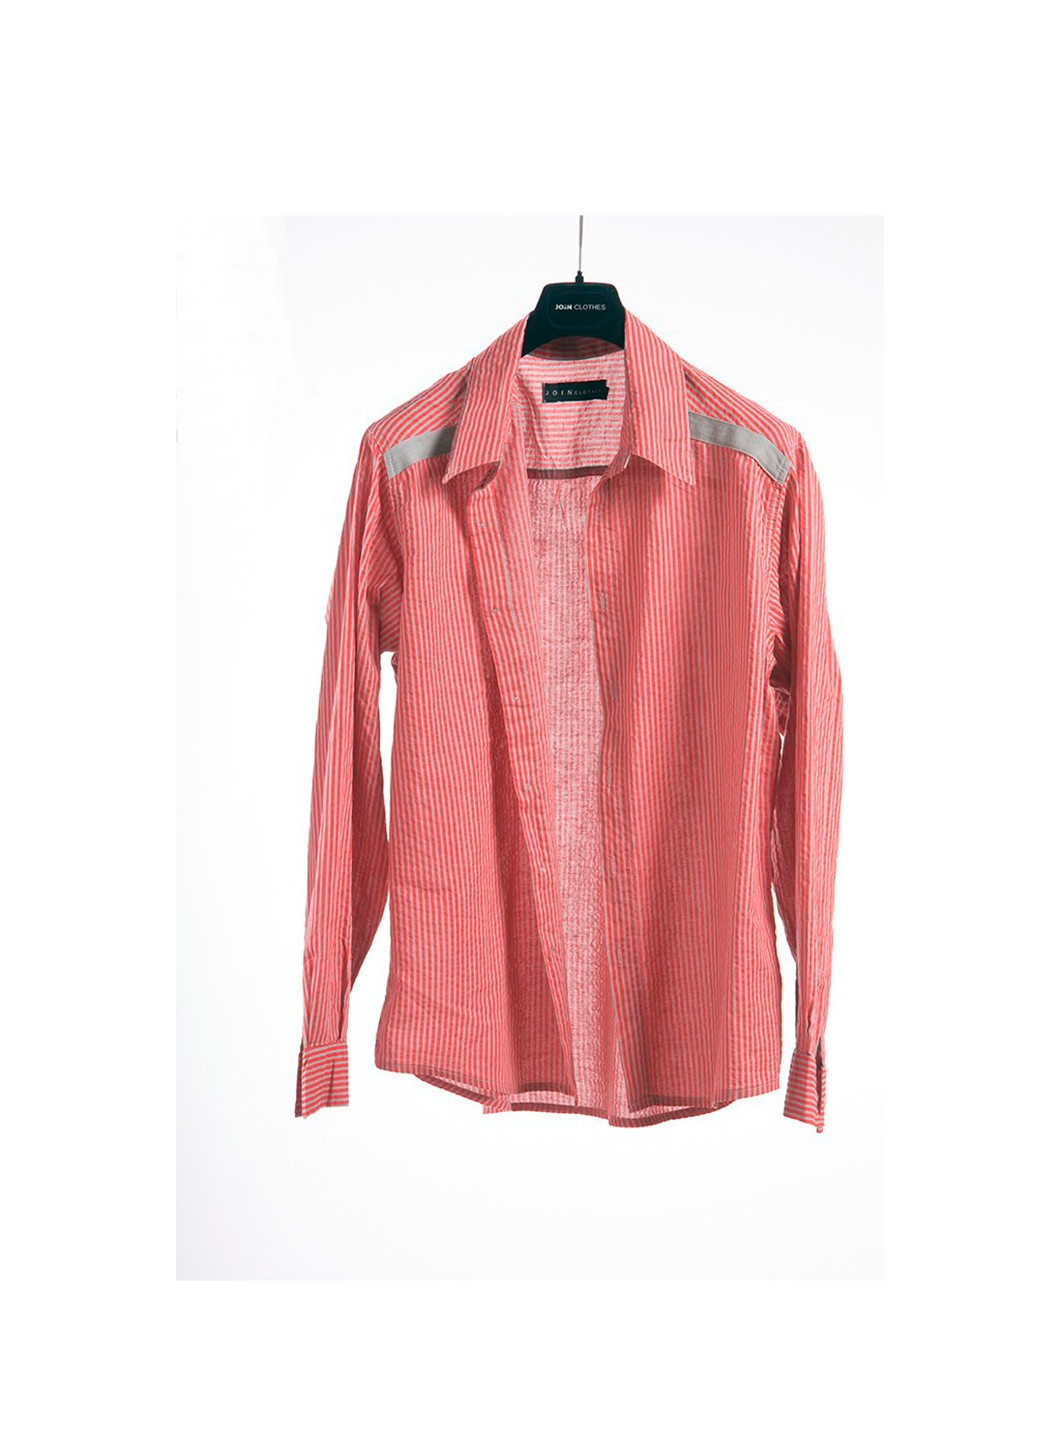 Shirt fakar stripes long sleeves 100 cotton join clothes for Long sleeve 100 cotton shirts